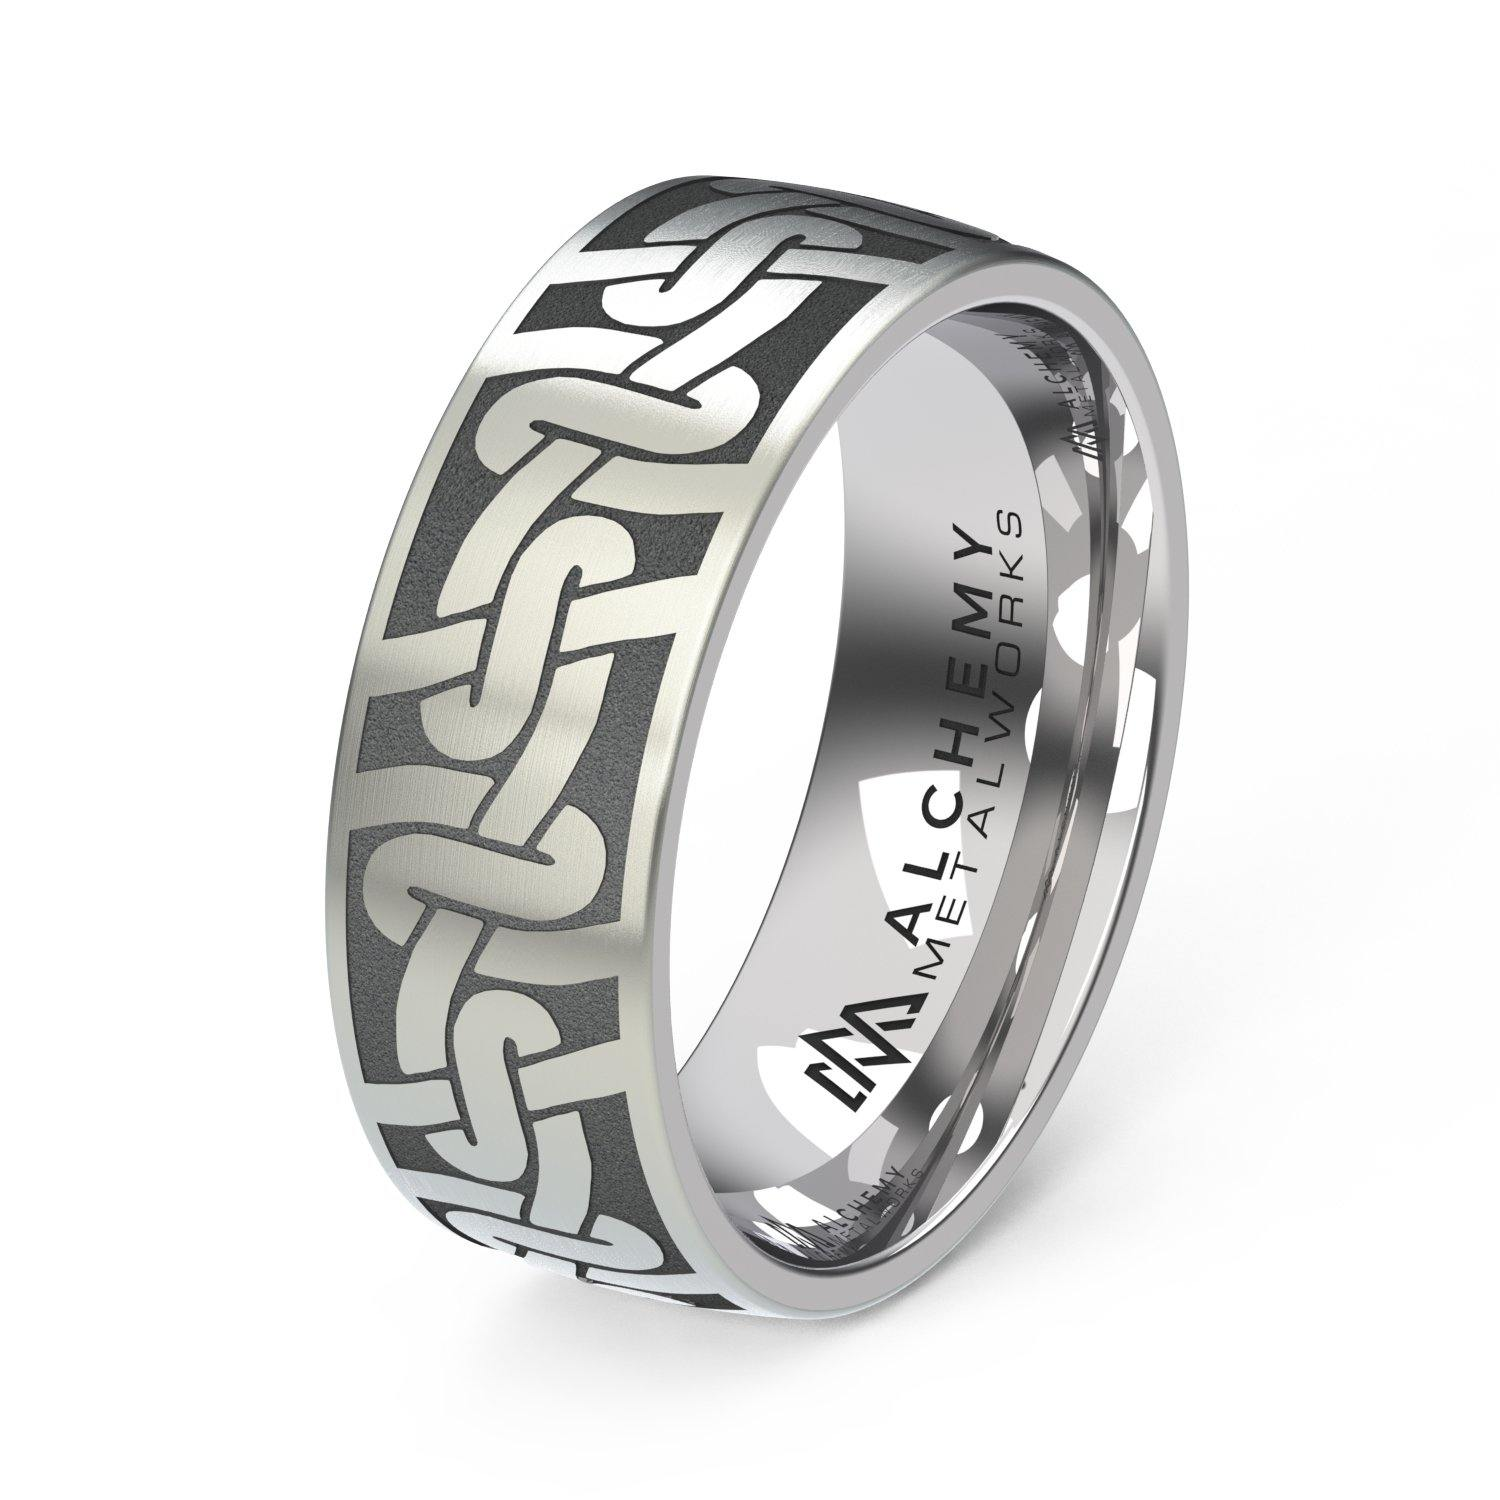 Laser Engraved Titanium Ring - Braided Rope